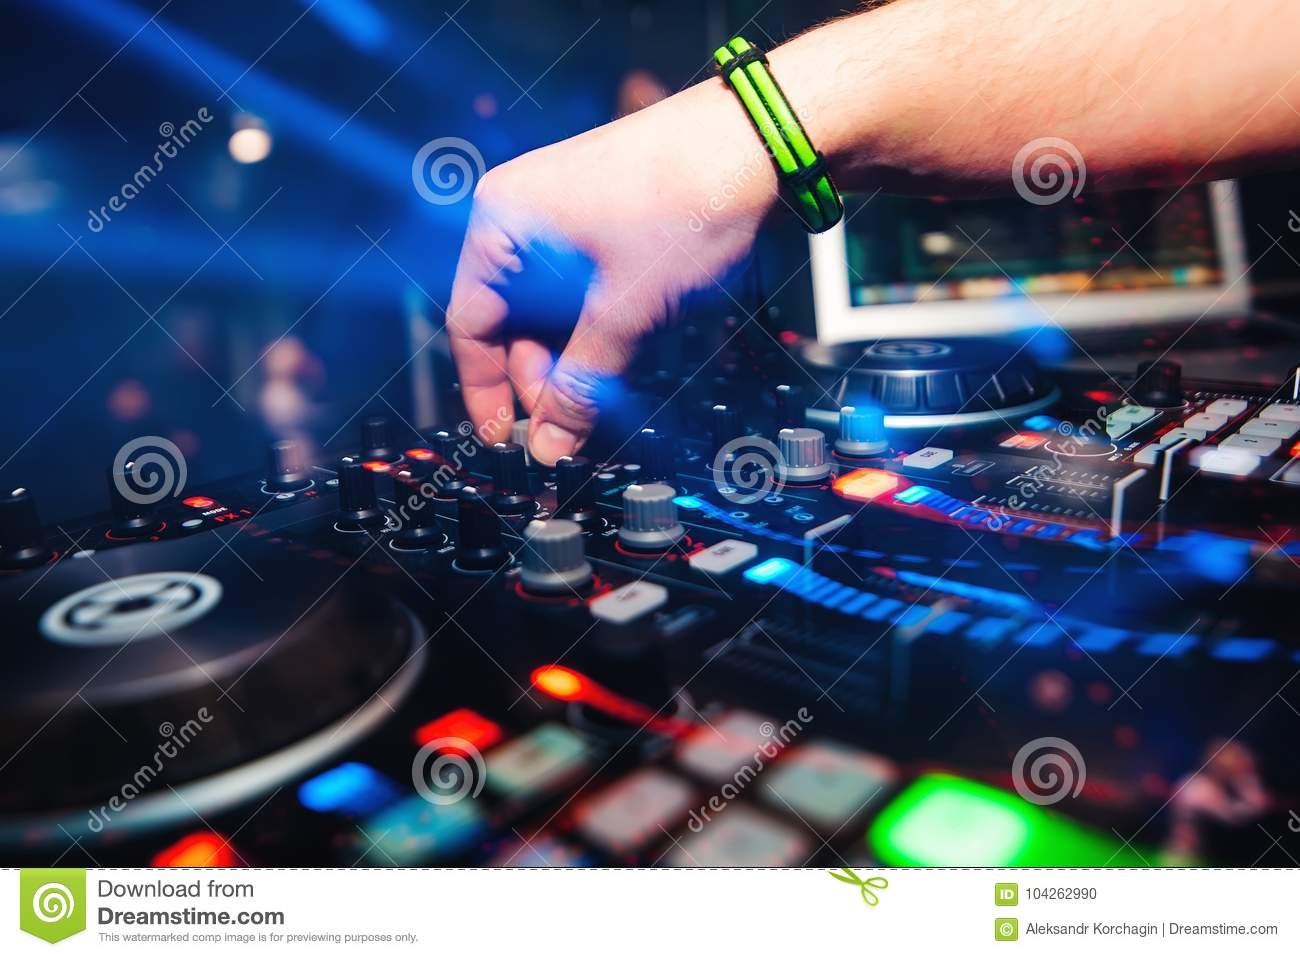 Professional Panel Dj Mixer With Hand Controlling Mixing Music In Audio Wiring Plans For Nightclub